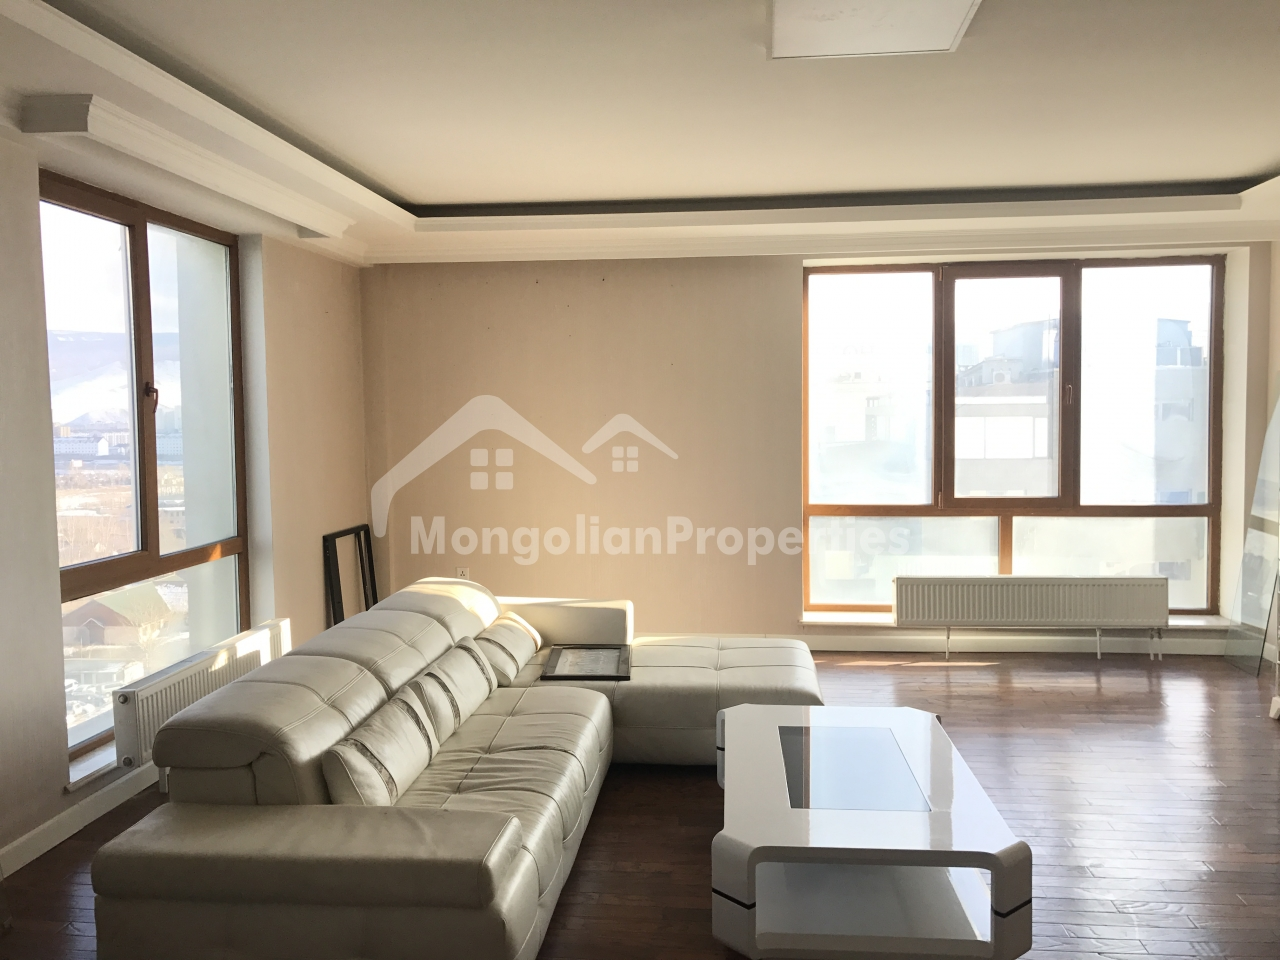 For SALE: Elit Apartments, Central, 192m2, 2 bedroom, 1 office, 2 bath apartment with 1 garage and windows facing south, east and west